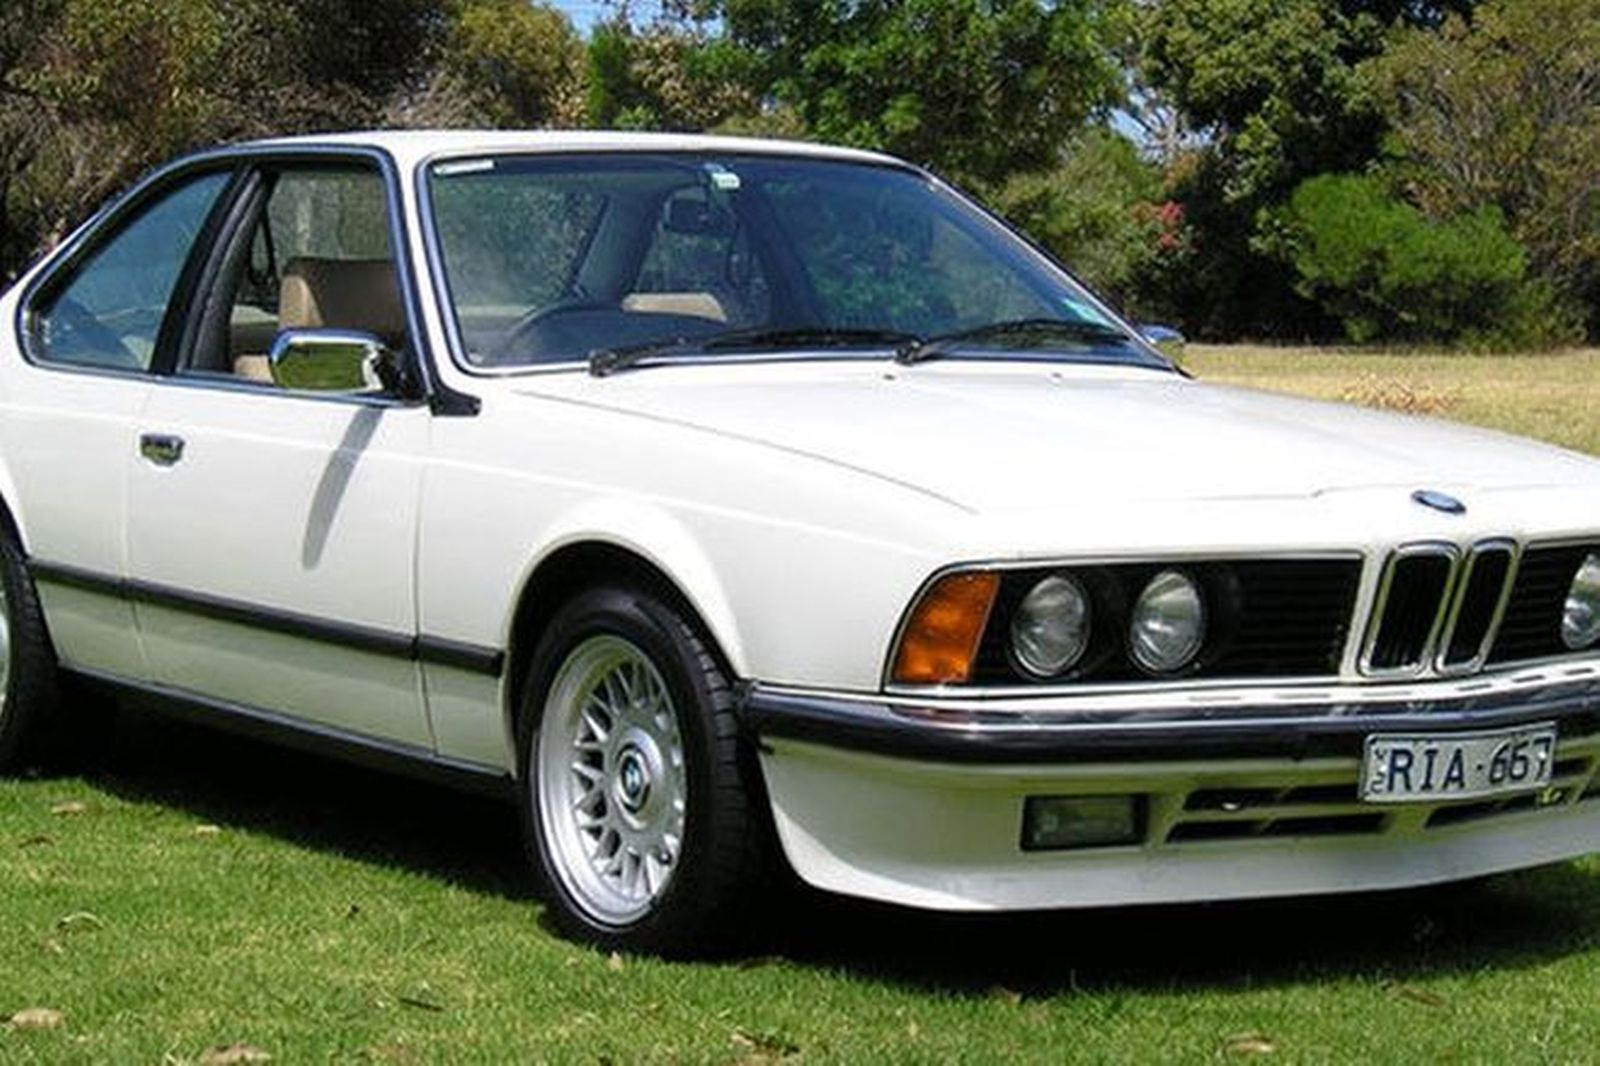 1983 bmw 635csi coupe sold bmw 635 csi coupe auctions lot 26 shannons E24 633CSi at readyjetset.co